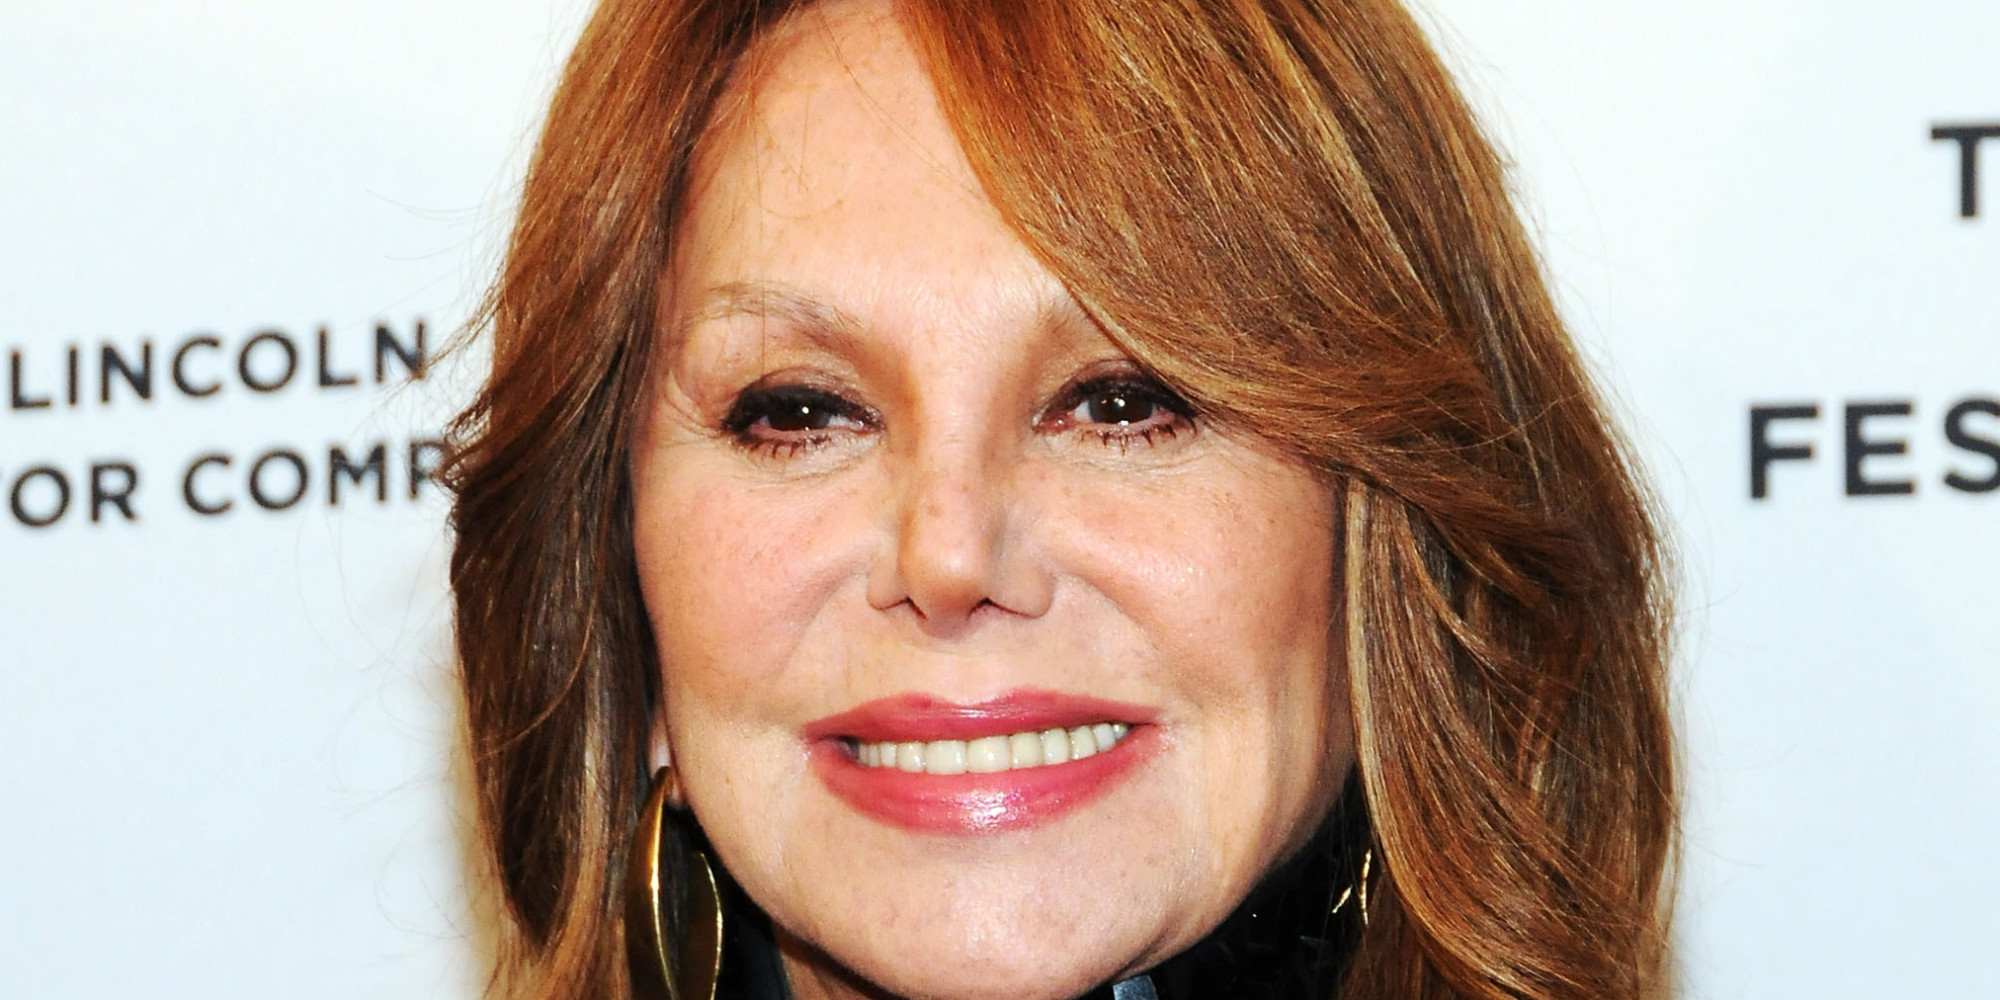 marlo thomas nose jobmarlo thomas that girl, marlo thomas friends, marlo thomas songs, marlo thomas, marlo thomas free to be you and me, marlo thomas 2015, marlo thomas facebook, marlo thomas instagram, marlo thomas net worth, marlo thomas and phil donahue, marlo thomas plastic surgery, marlo thomas age, marlo thomas today, marlo thomas nose job, marlo thomas imdb, marlo thomas broadway, marlo thomas book, marlo thomas st jude, marlo thomas ted bessell relationship, marlo thomas biography